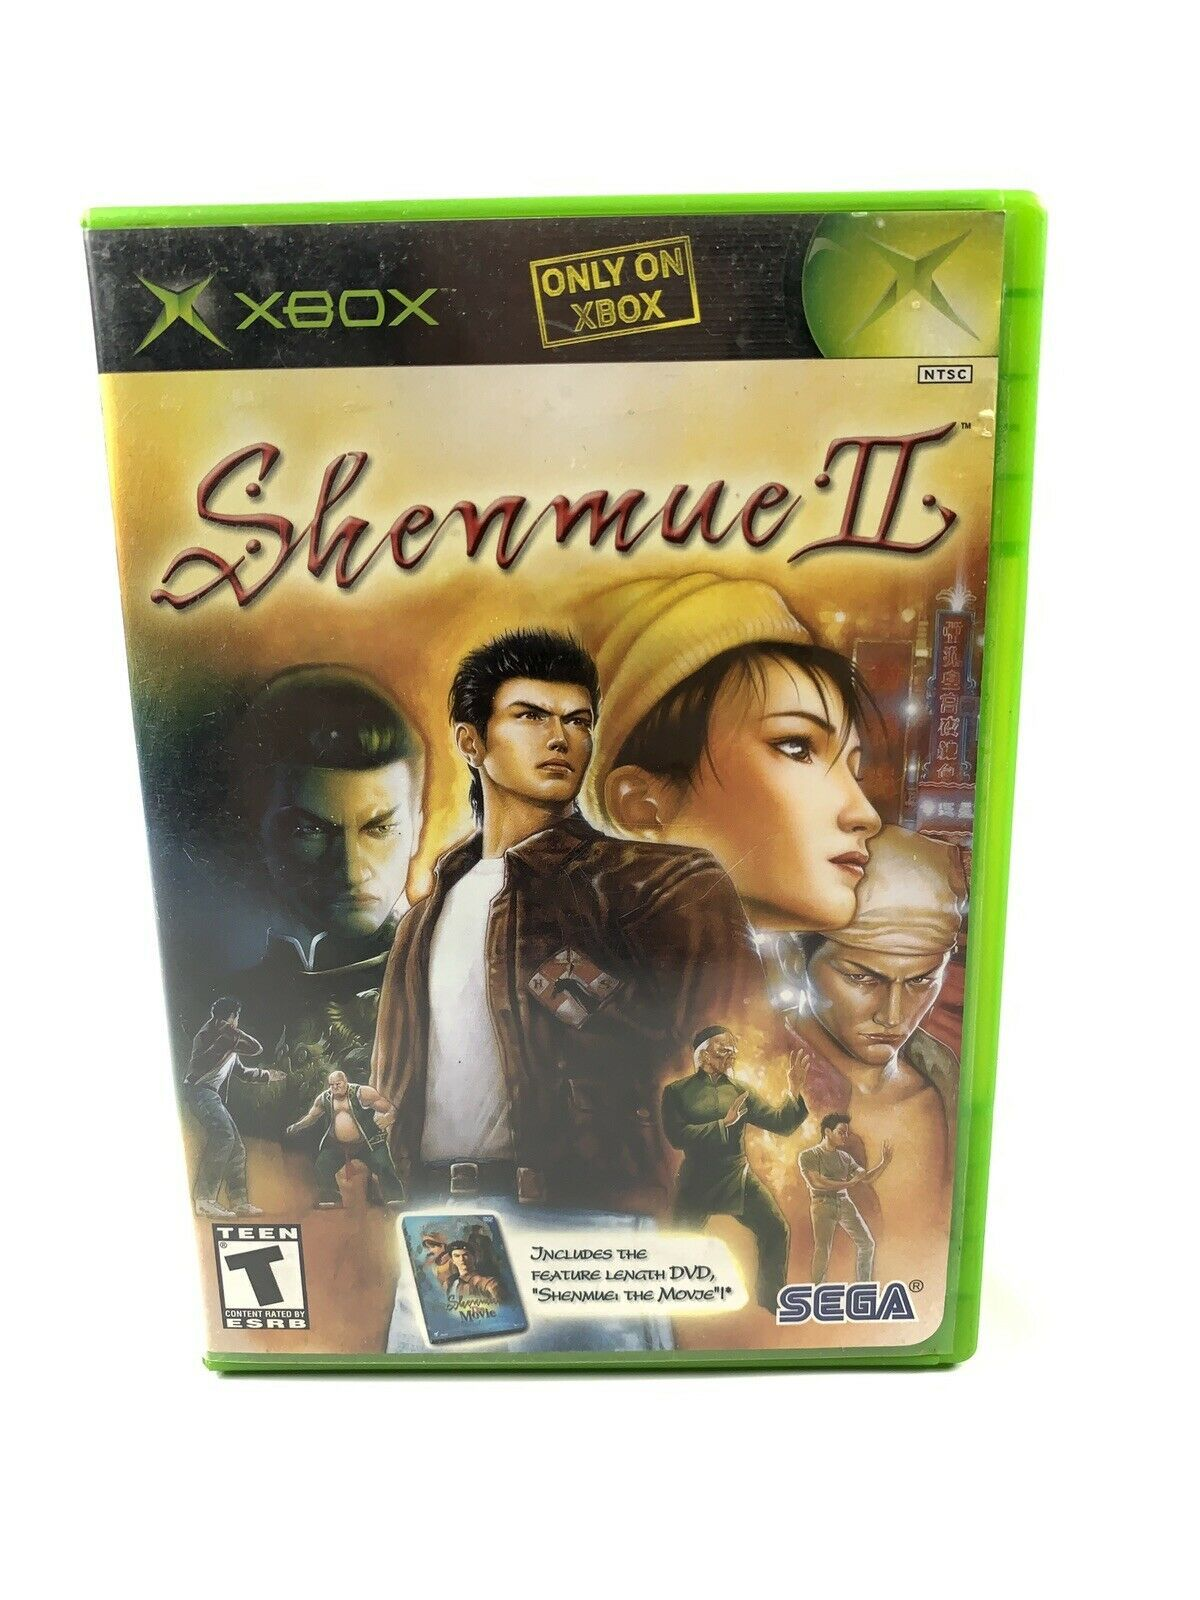 Shenmue II Microsoft Xbox, 2002 Game Case Manual Tested Working